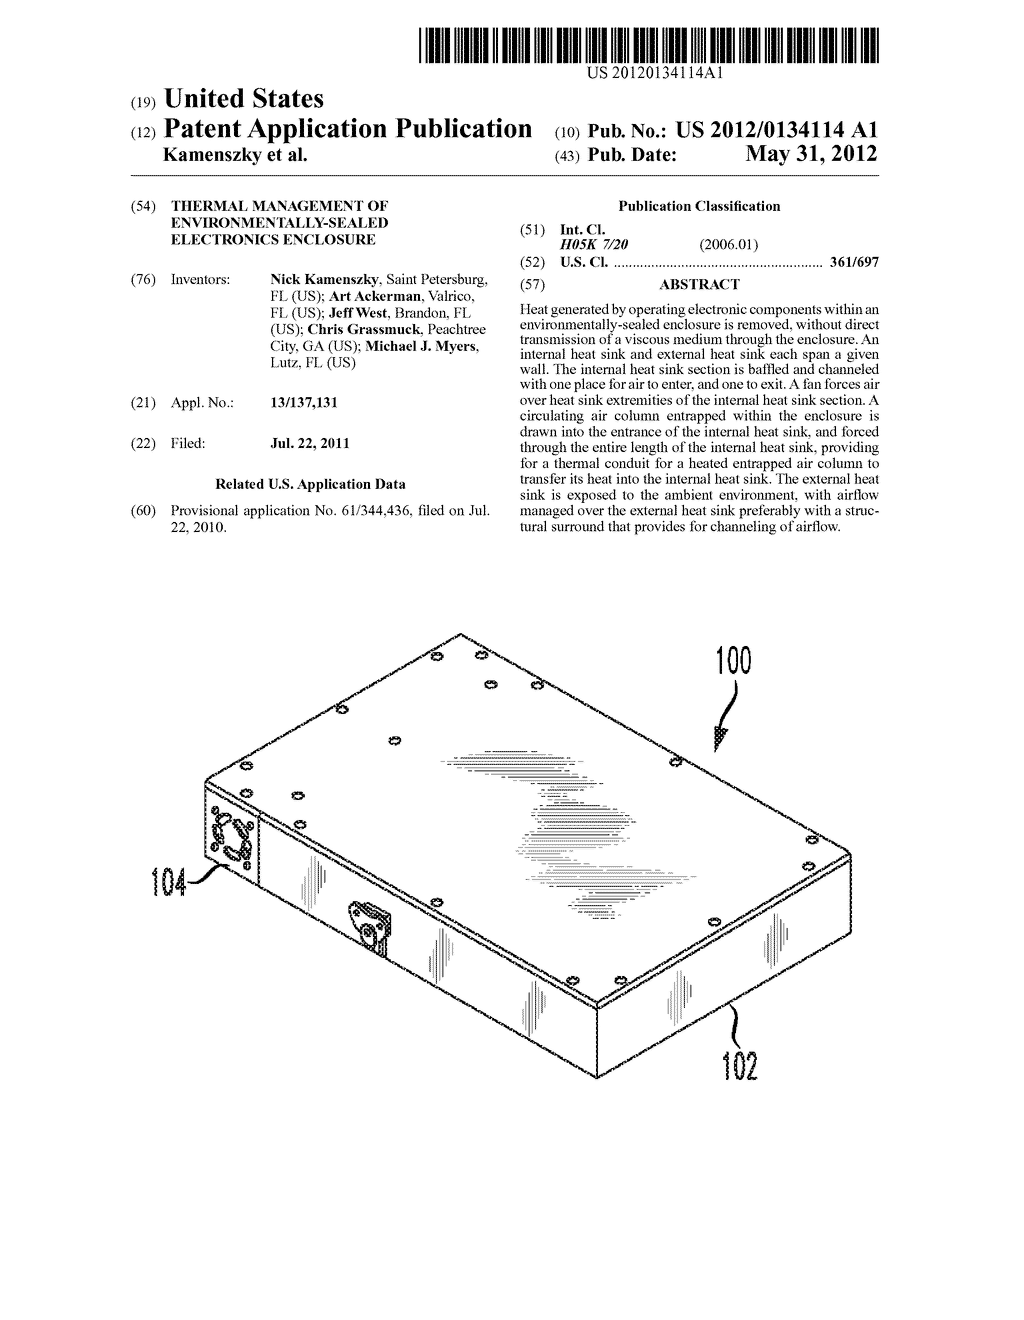 Thermal management of environmentally-sealed electronics enclosure - diagram, schematic, and image 01